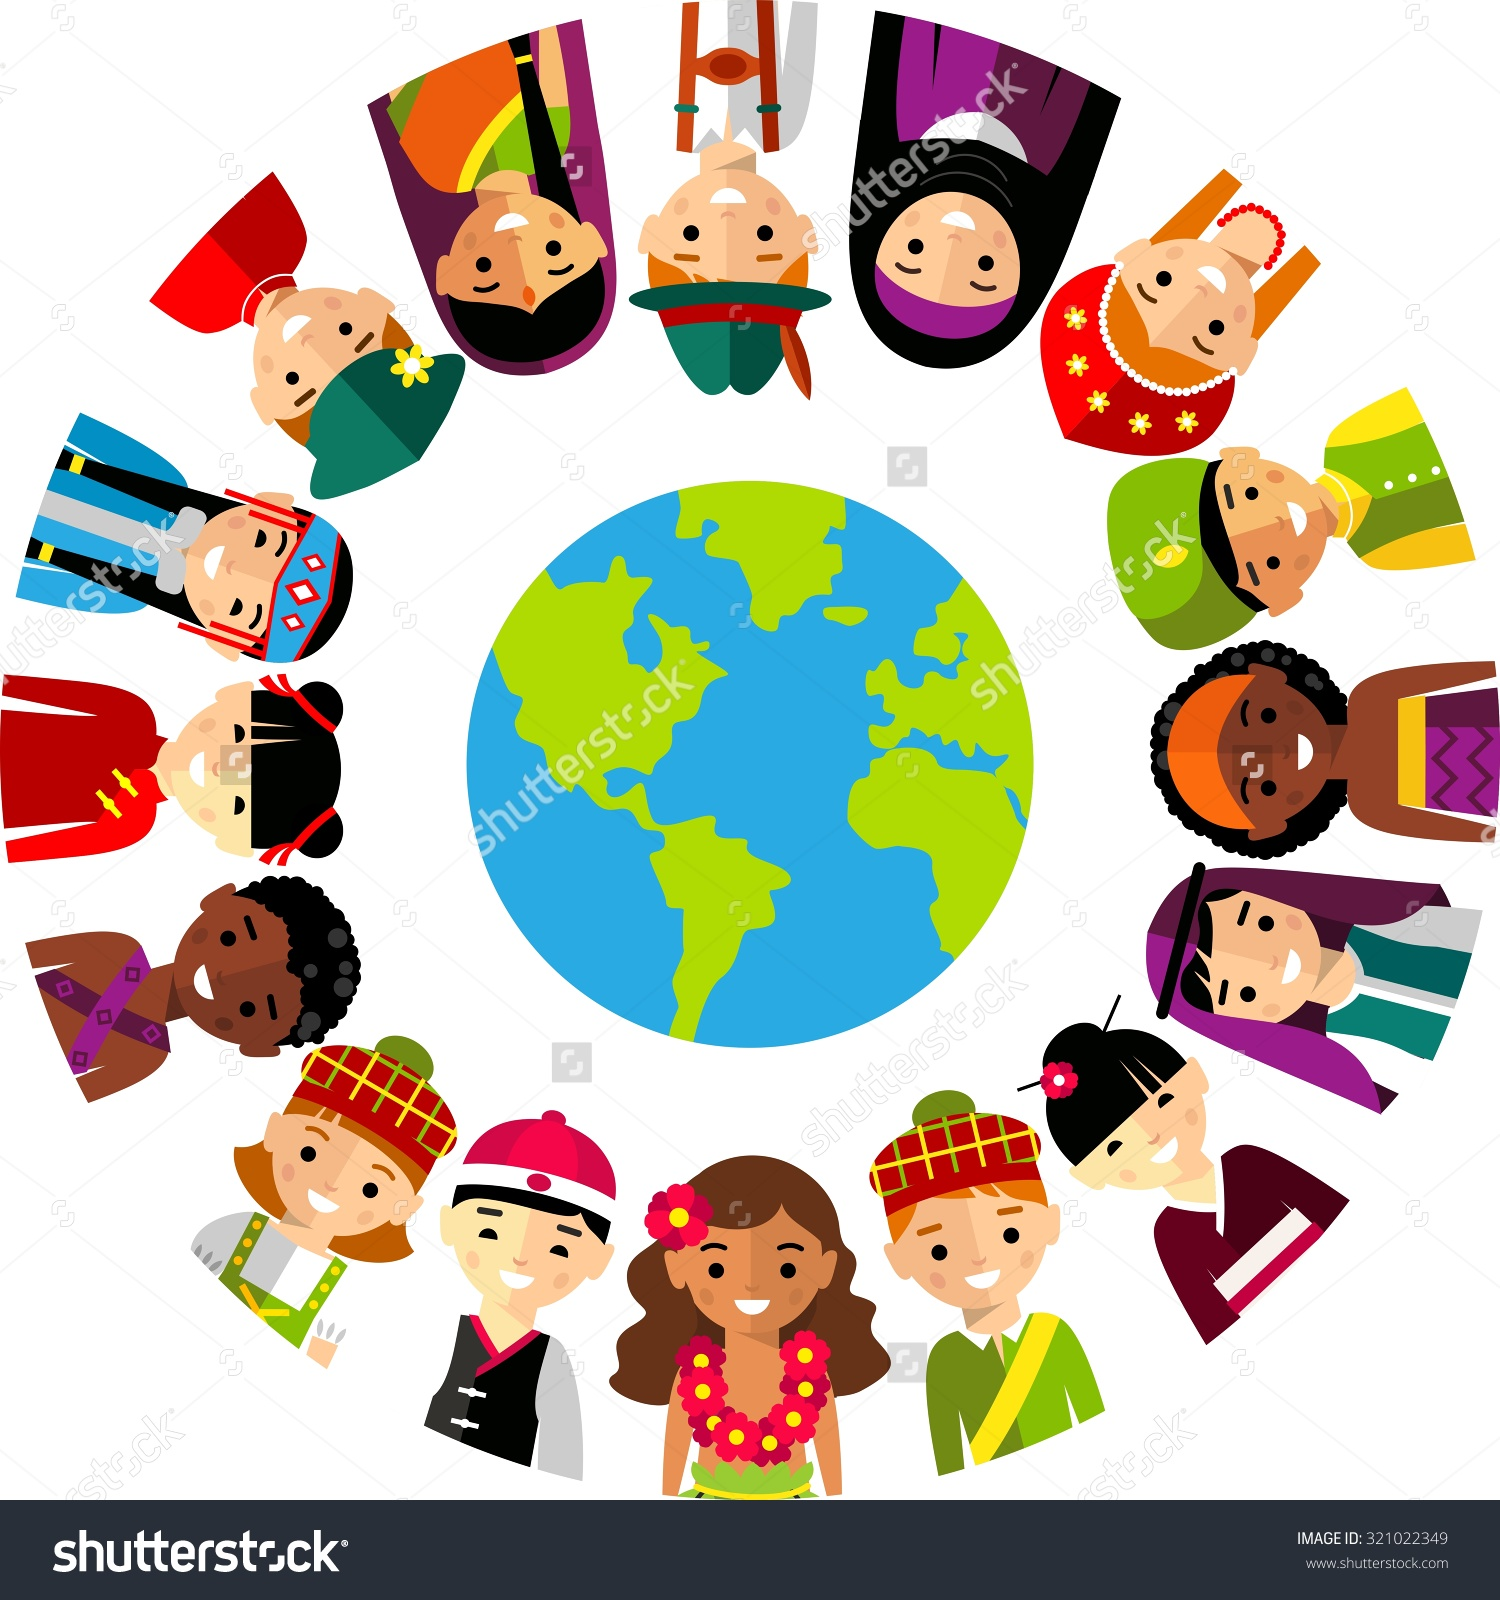 Multicultural world clipart.